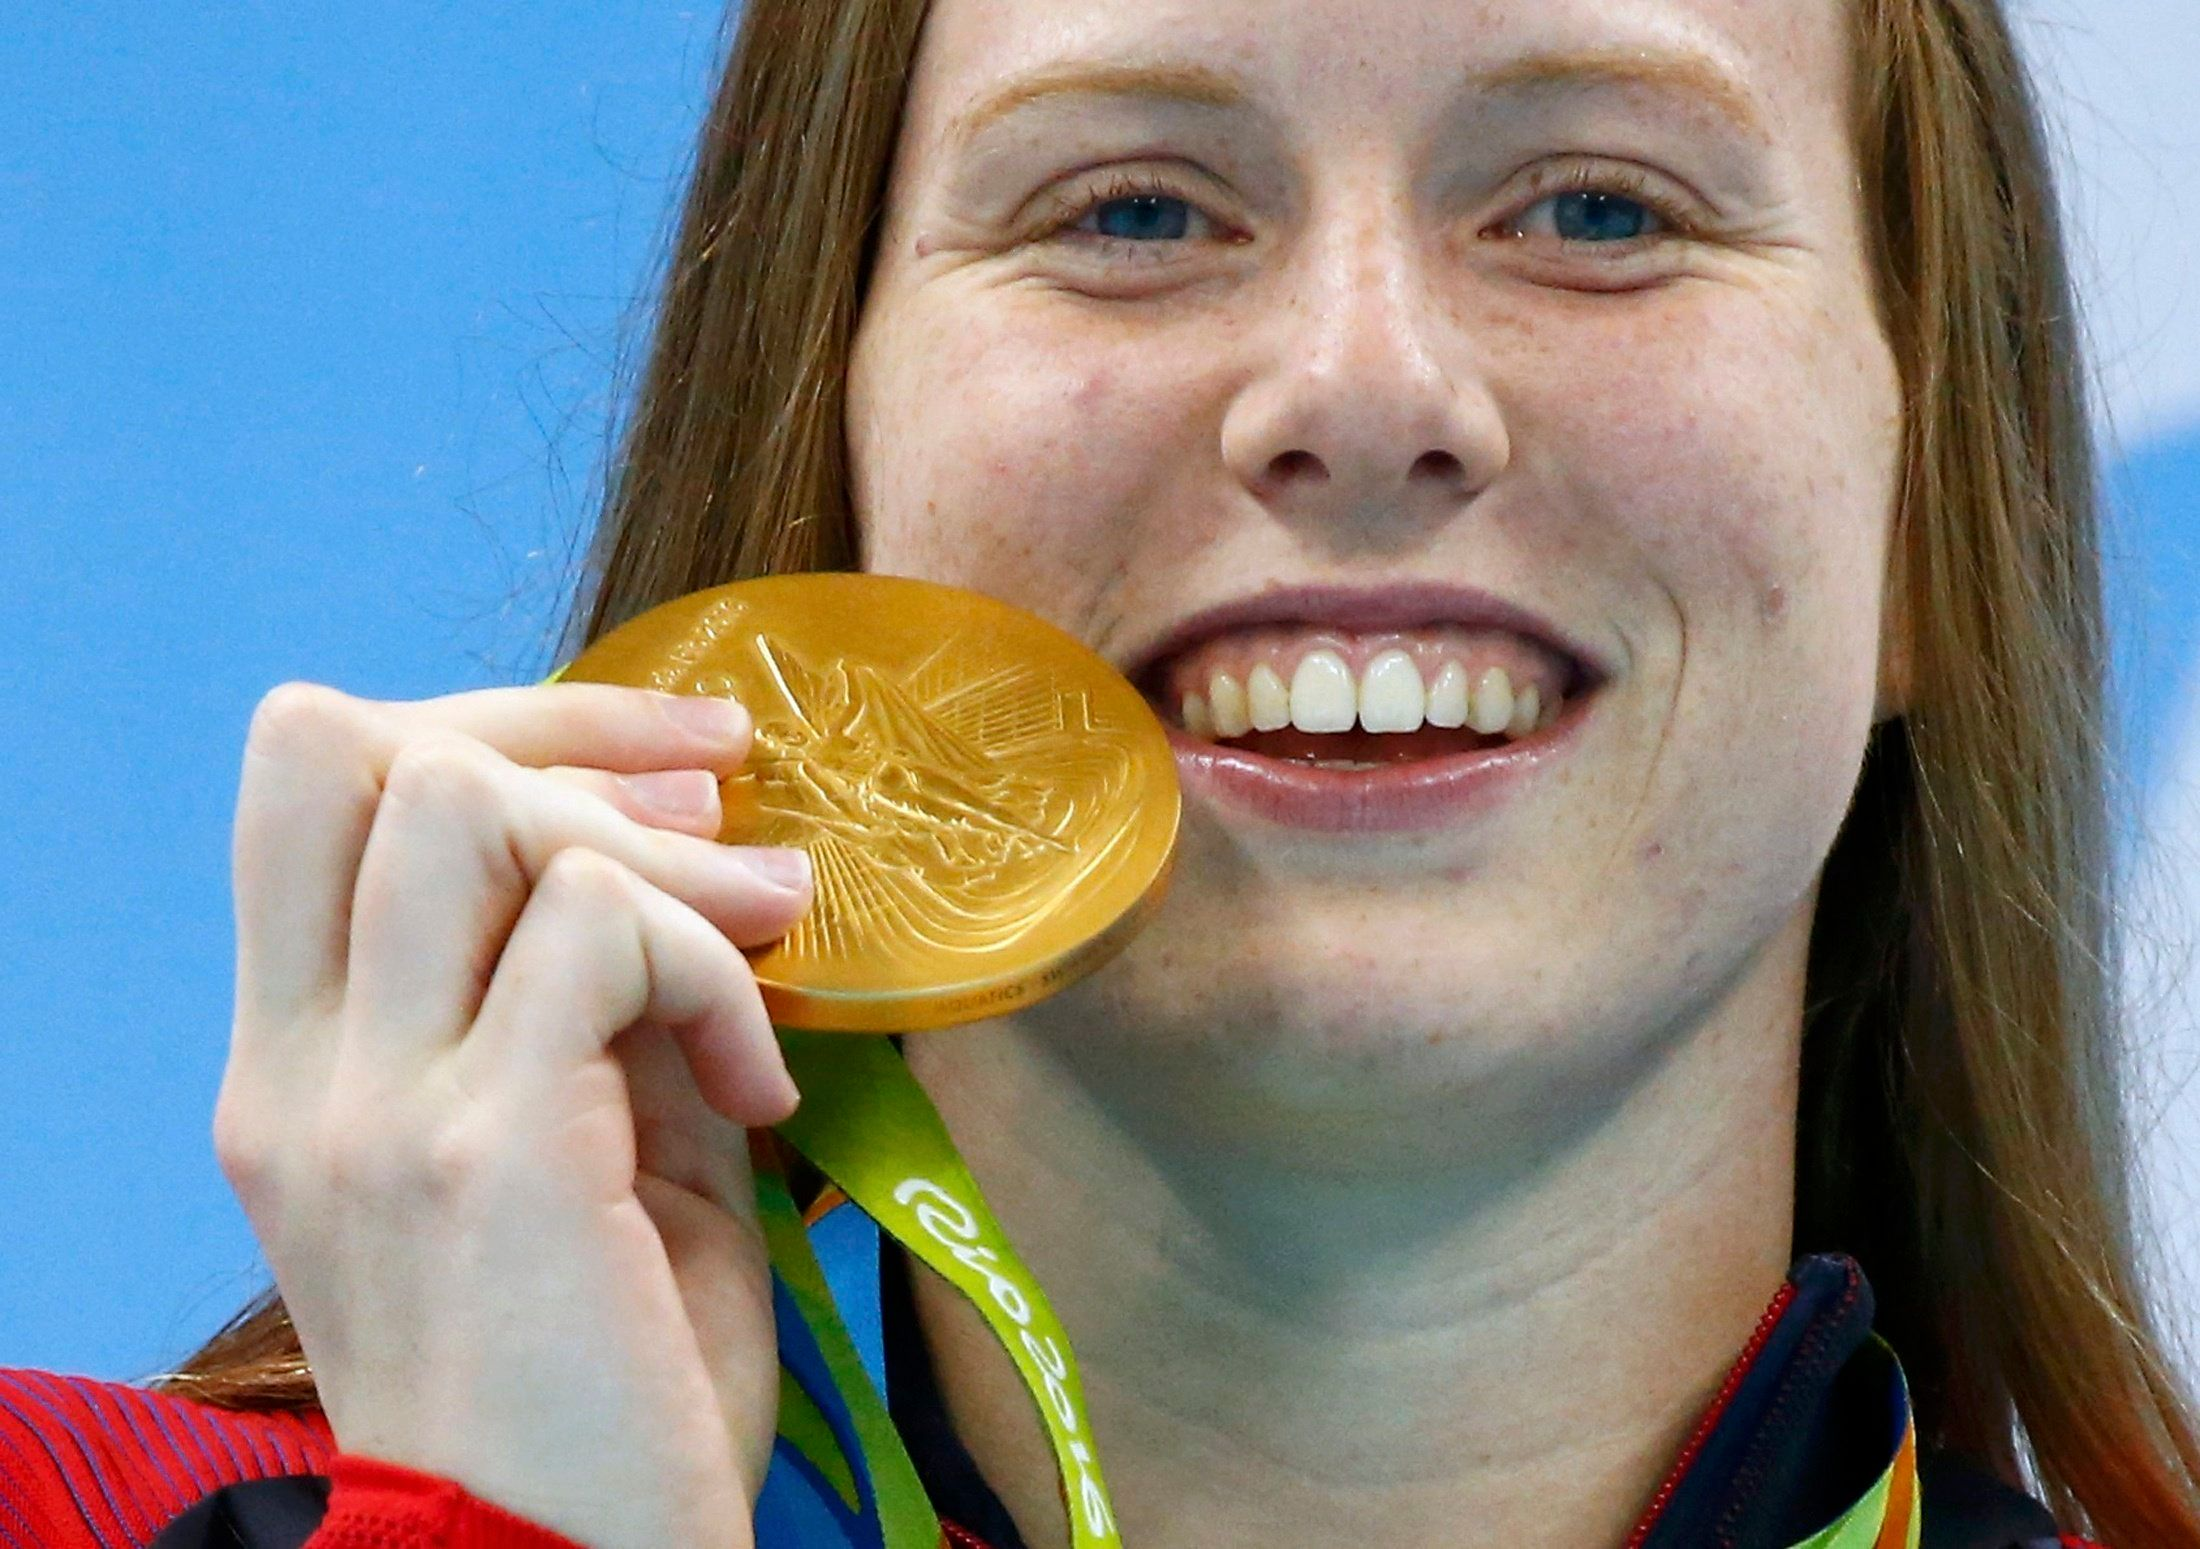 2016 Rio Olympics - Swimming - Victory Ceremony - Women's 100m Breaststroke Victory Ceremony - Olympic Aquatics Stadium - Rio de Janeiro, Brazil - 08/08/2016. Lilly King (USA) of USA poses with her medal   REUTERS/David Gray FOR EDITORIAL USE ONLY. NOT FOR SALE FOR MARKETING OR ADVERTISING CAMPAIGNS.